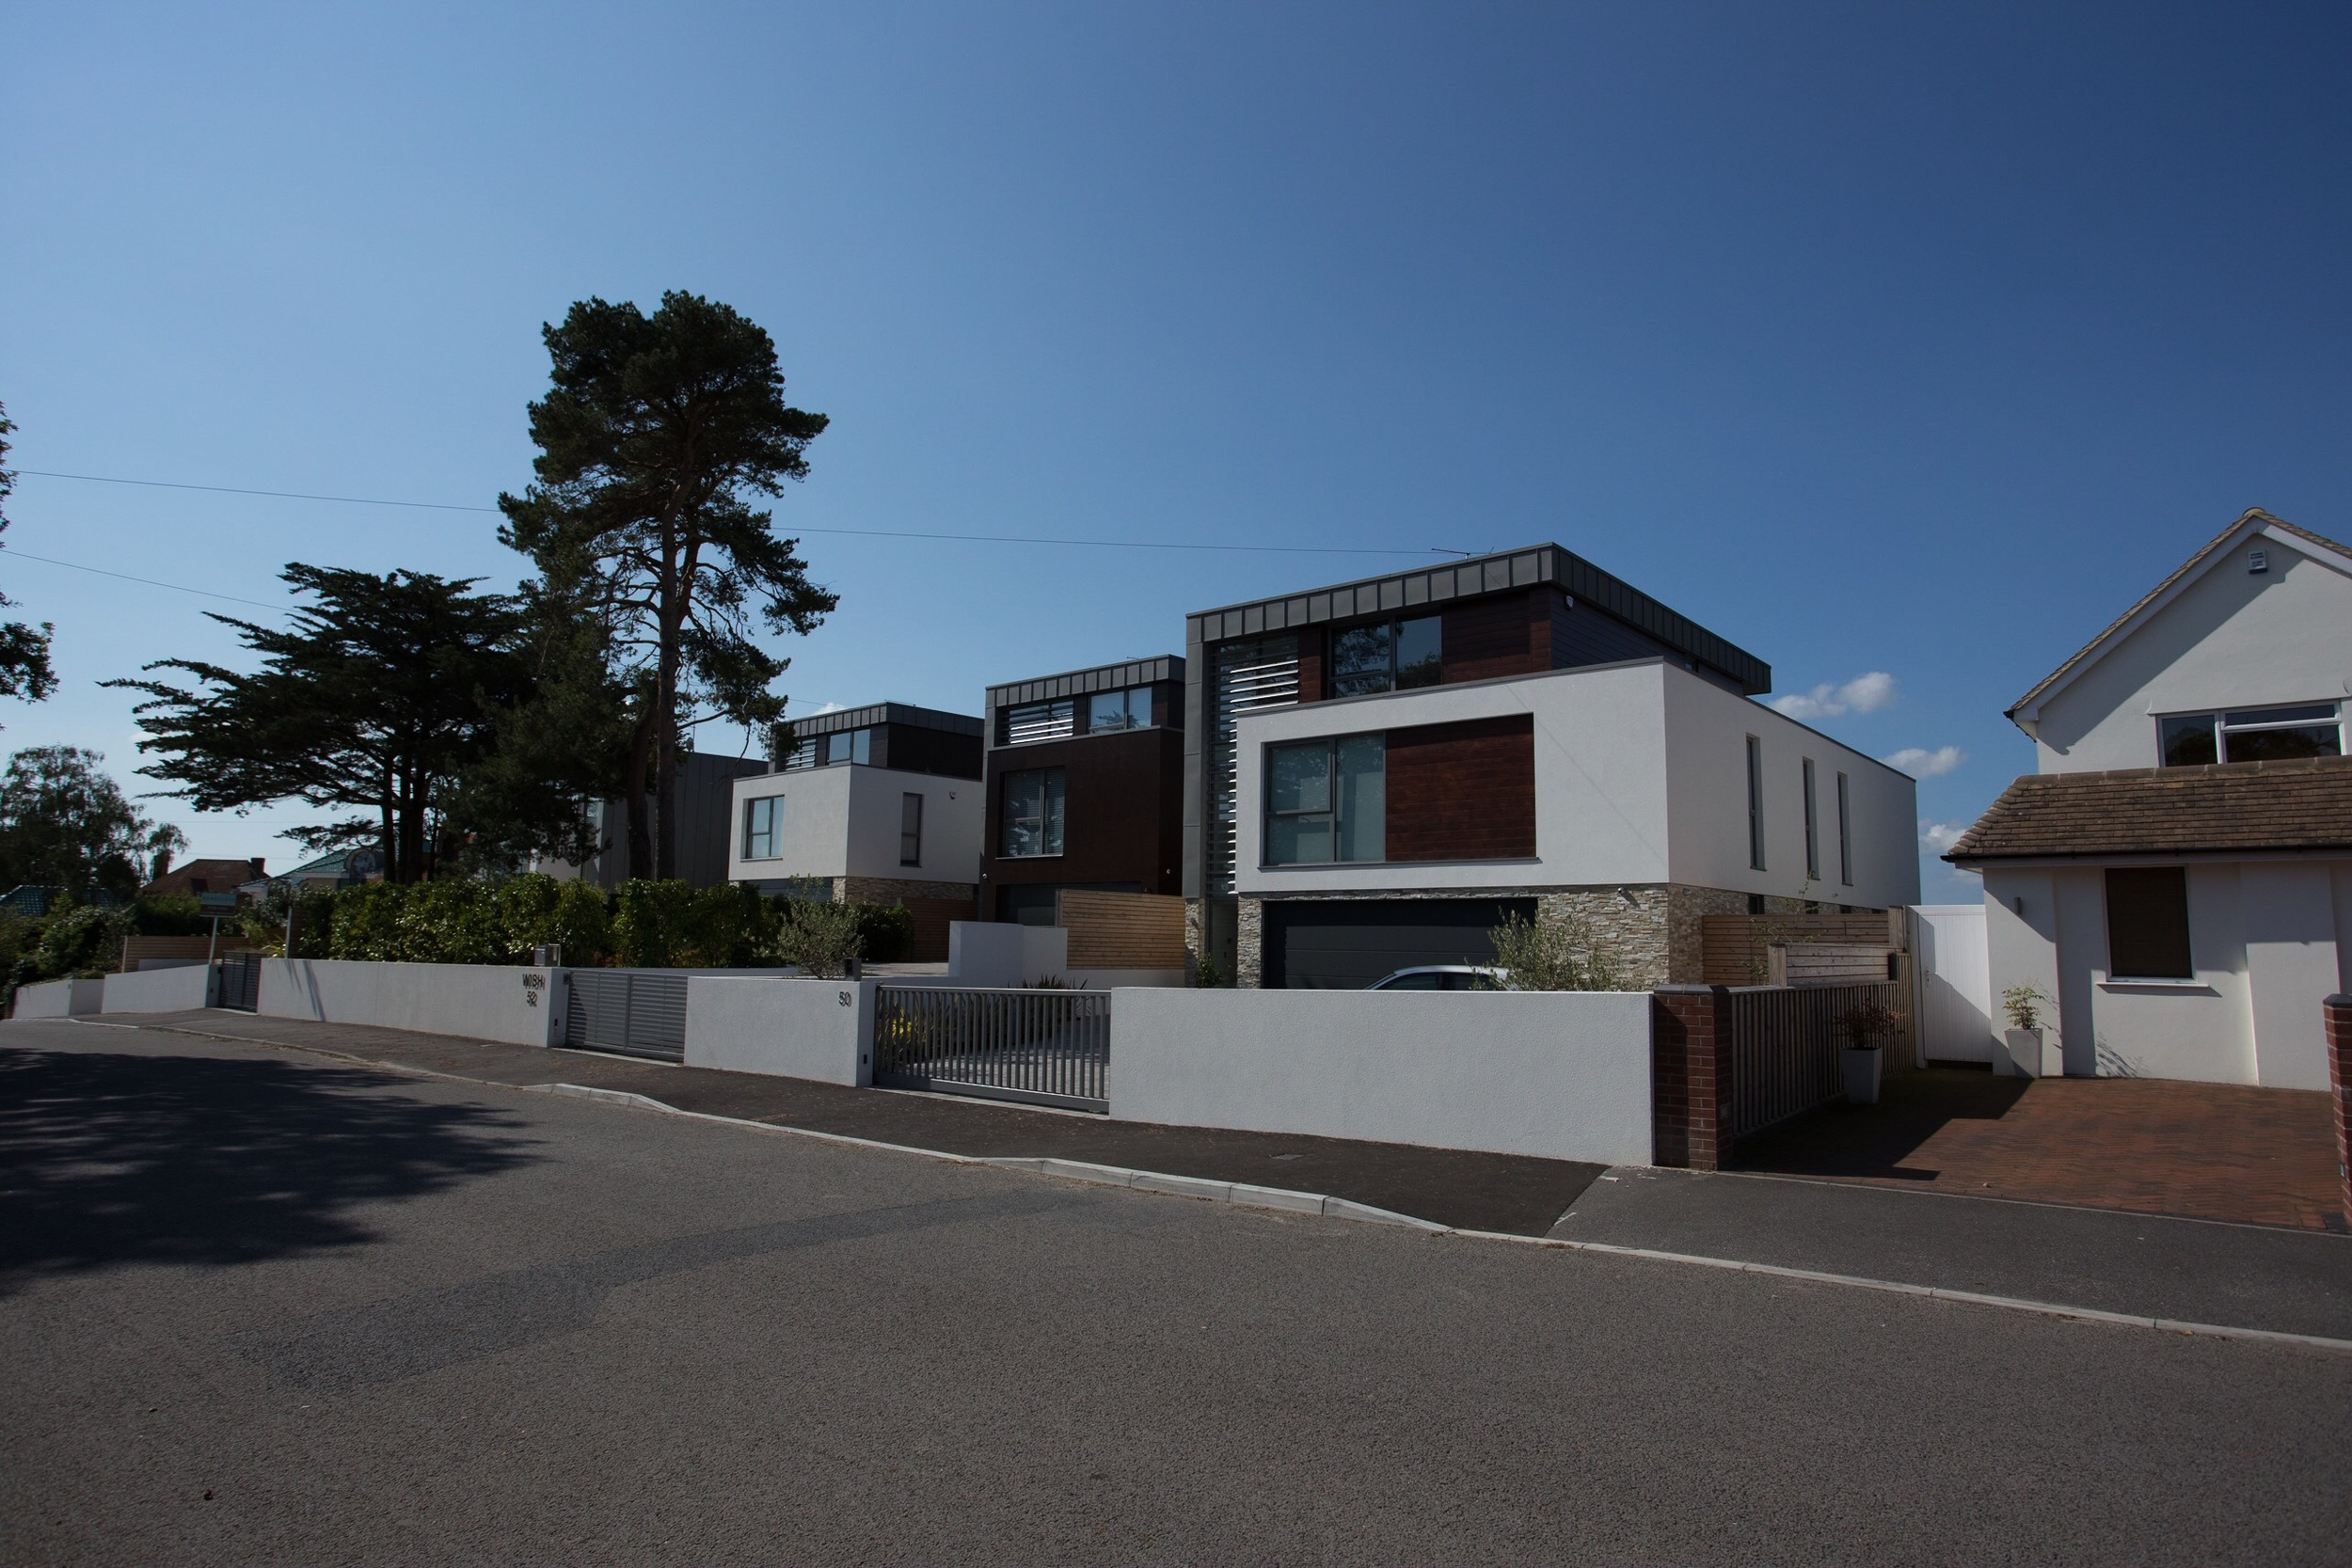 Construction Product Photography Shoot by Rick McEvoy Architectural Photographer in Dorset